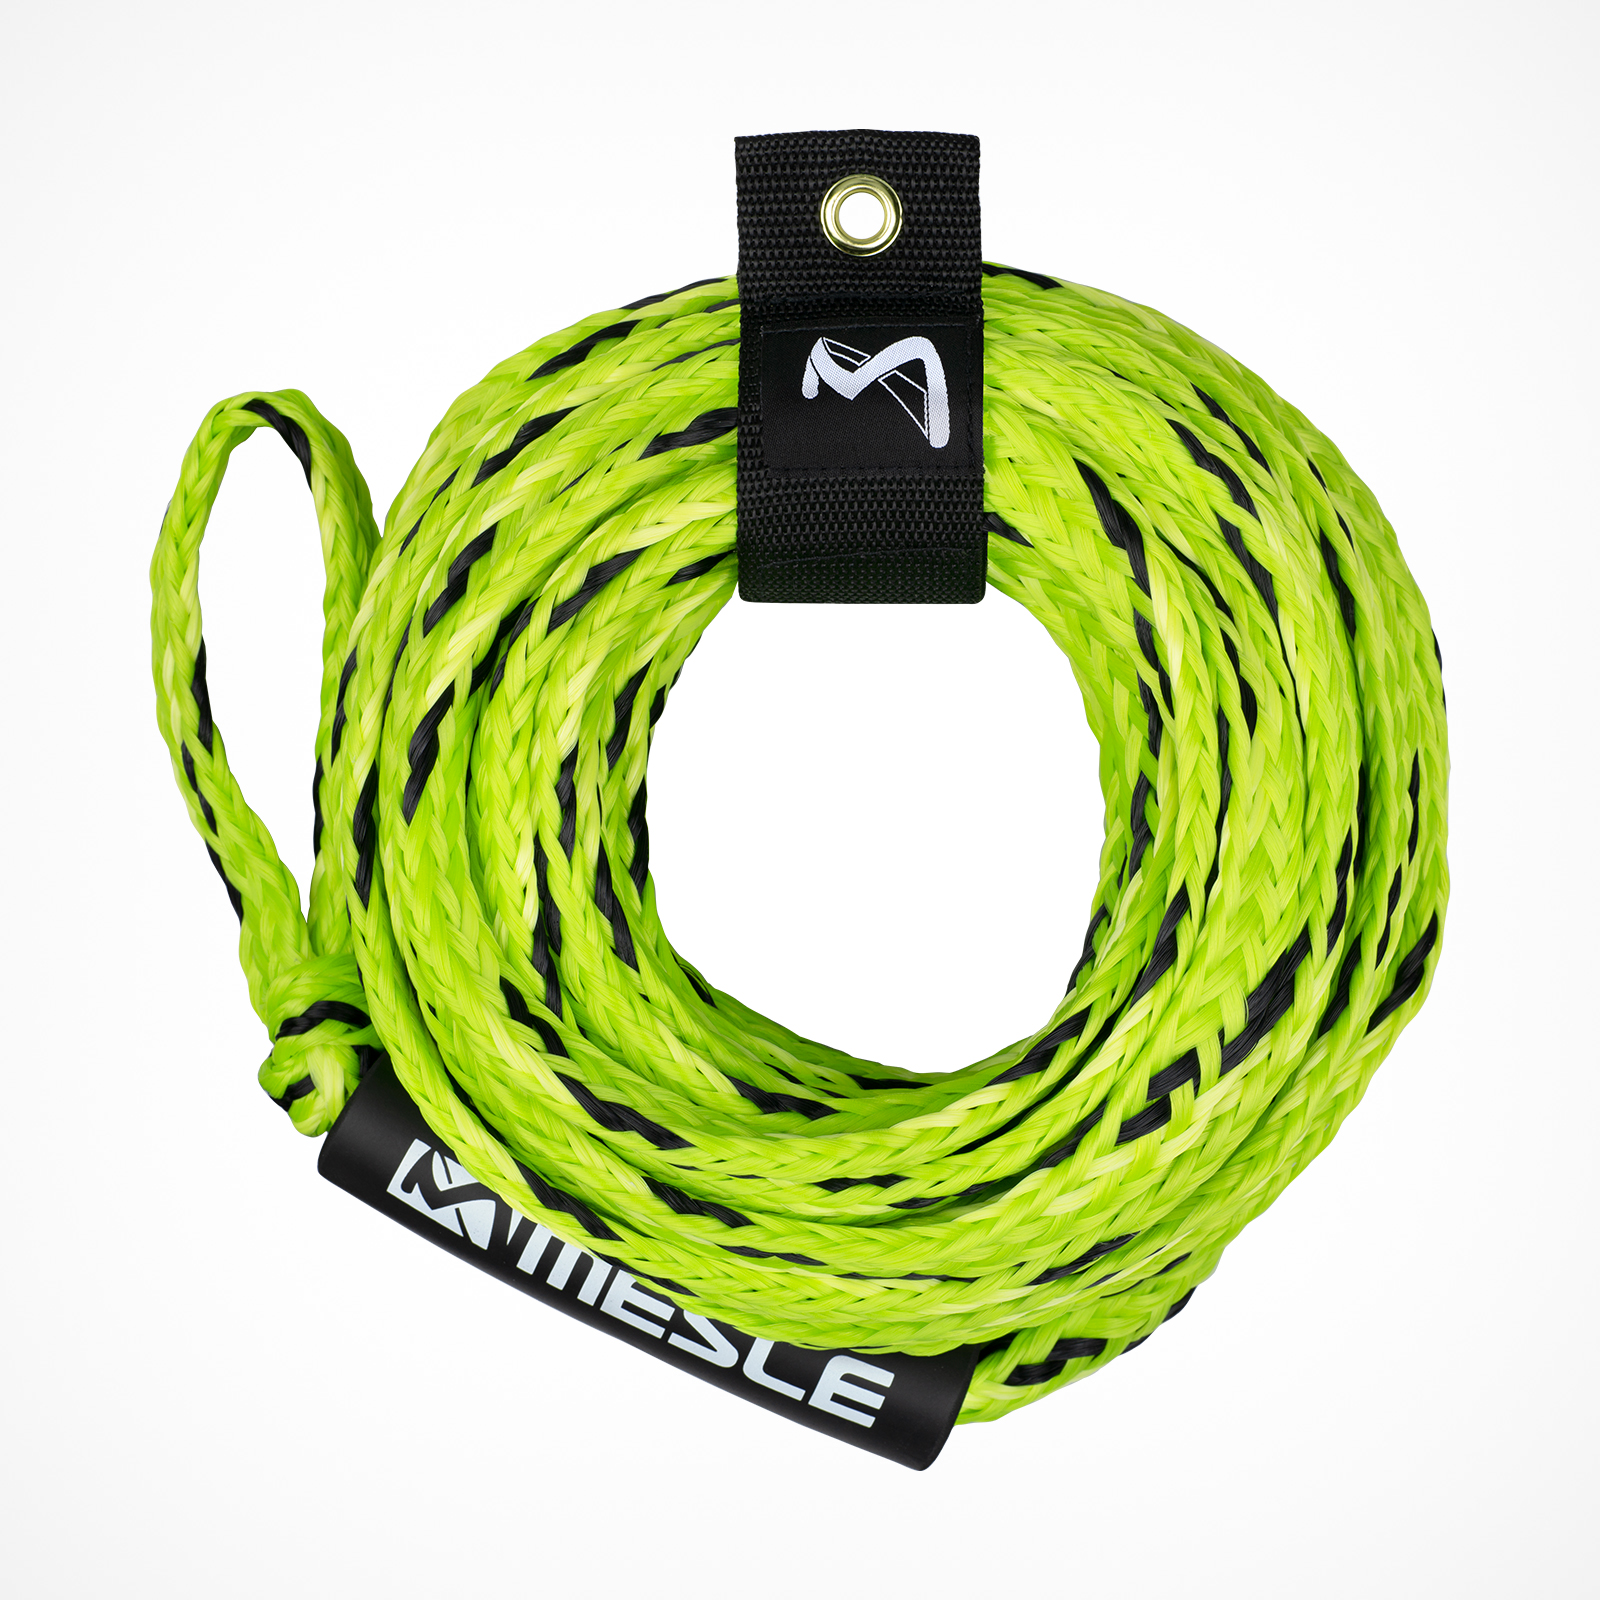 MESLE Tow Rope Pro 4P 60' for towable Water Sports Tubes in lime, floating and inclusive Rope Keeper